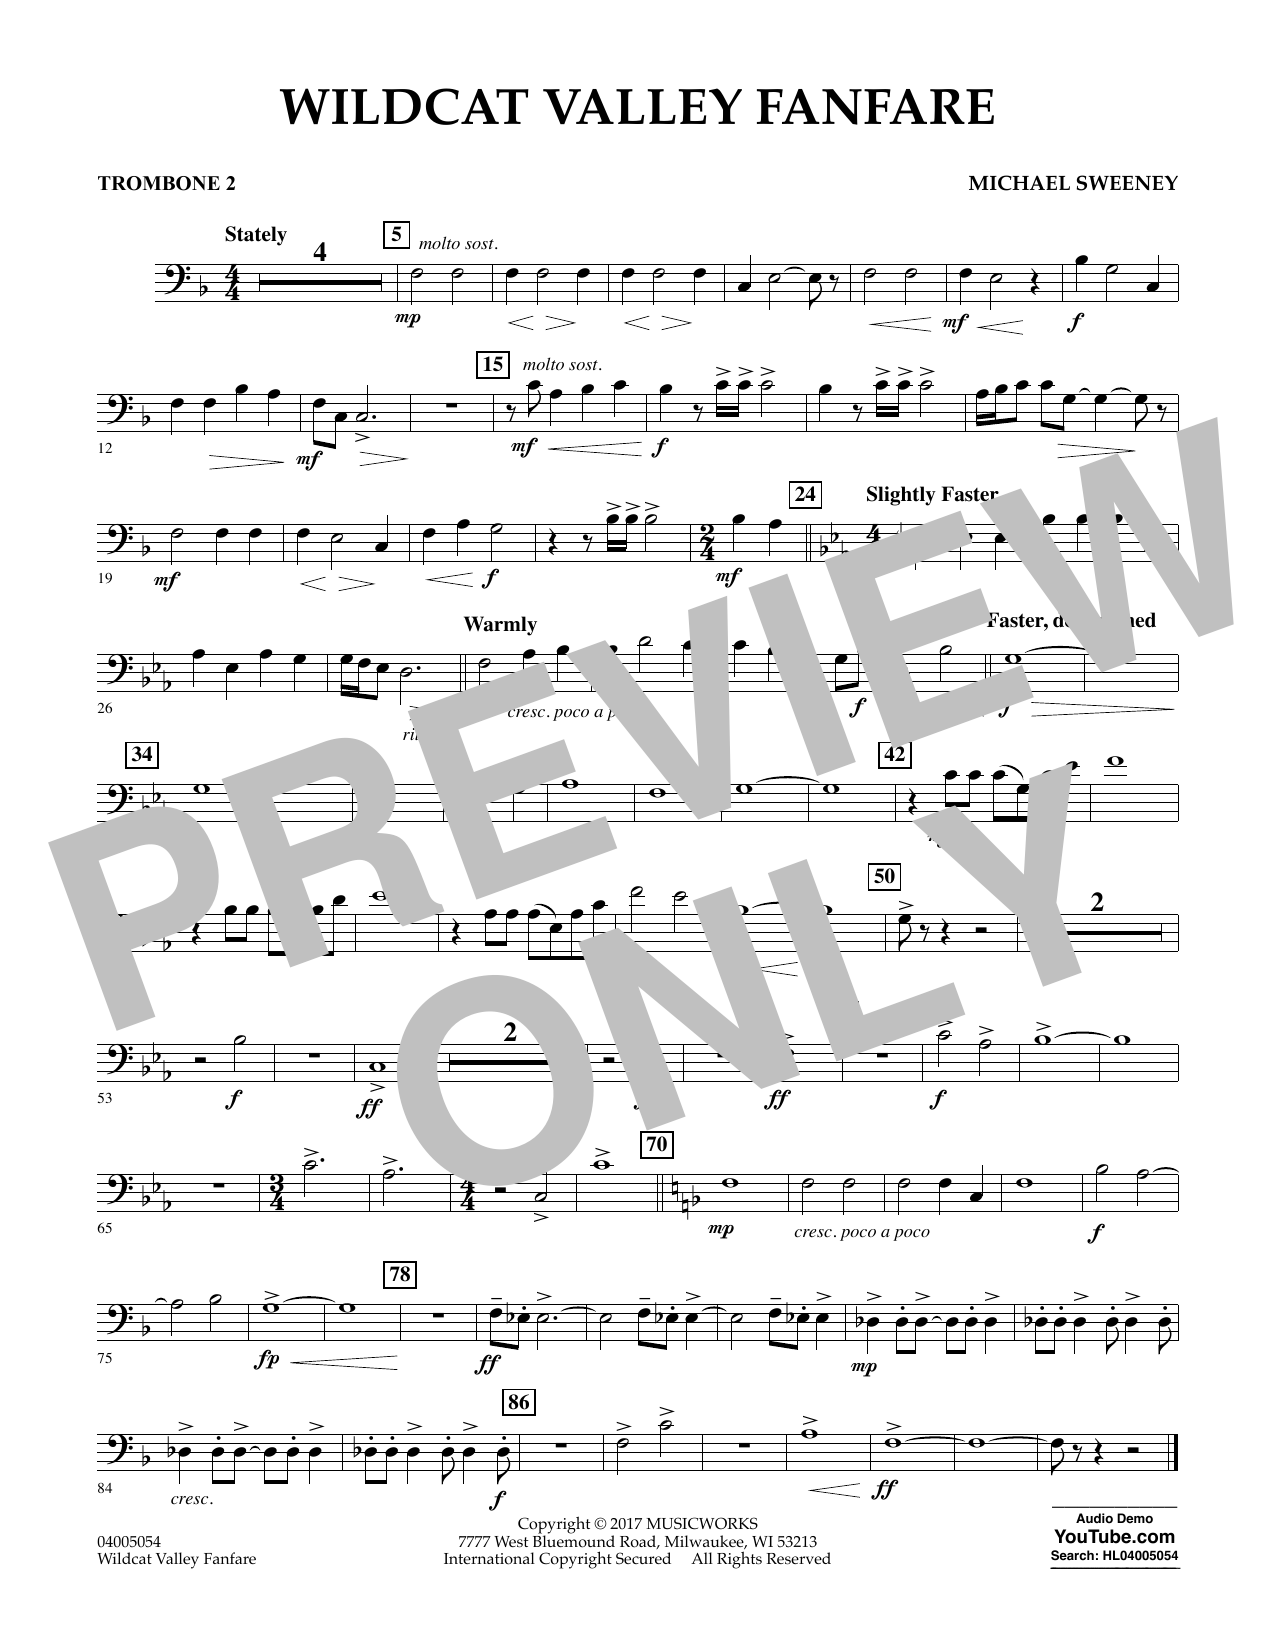 Michael Sweeney Wildcat Valley Fanfare - Trombone 2 sheet music notes and chords. Download Printable PDF.